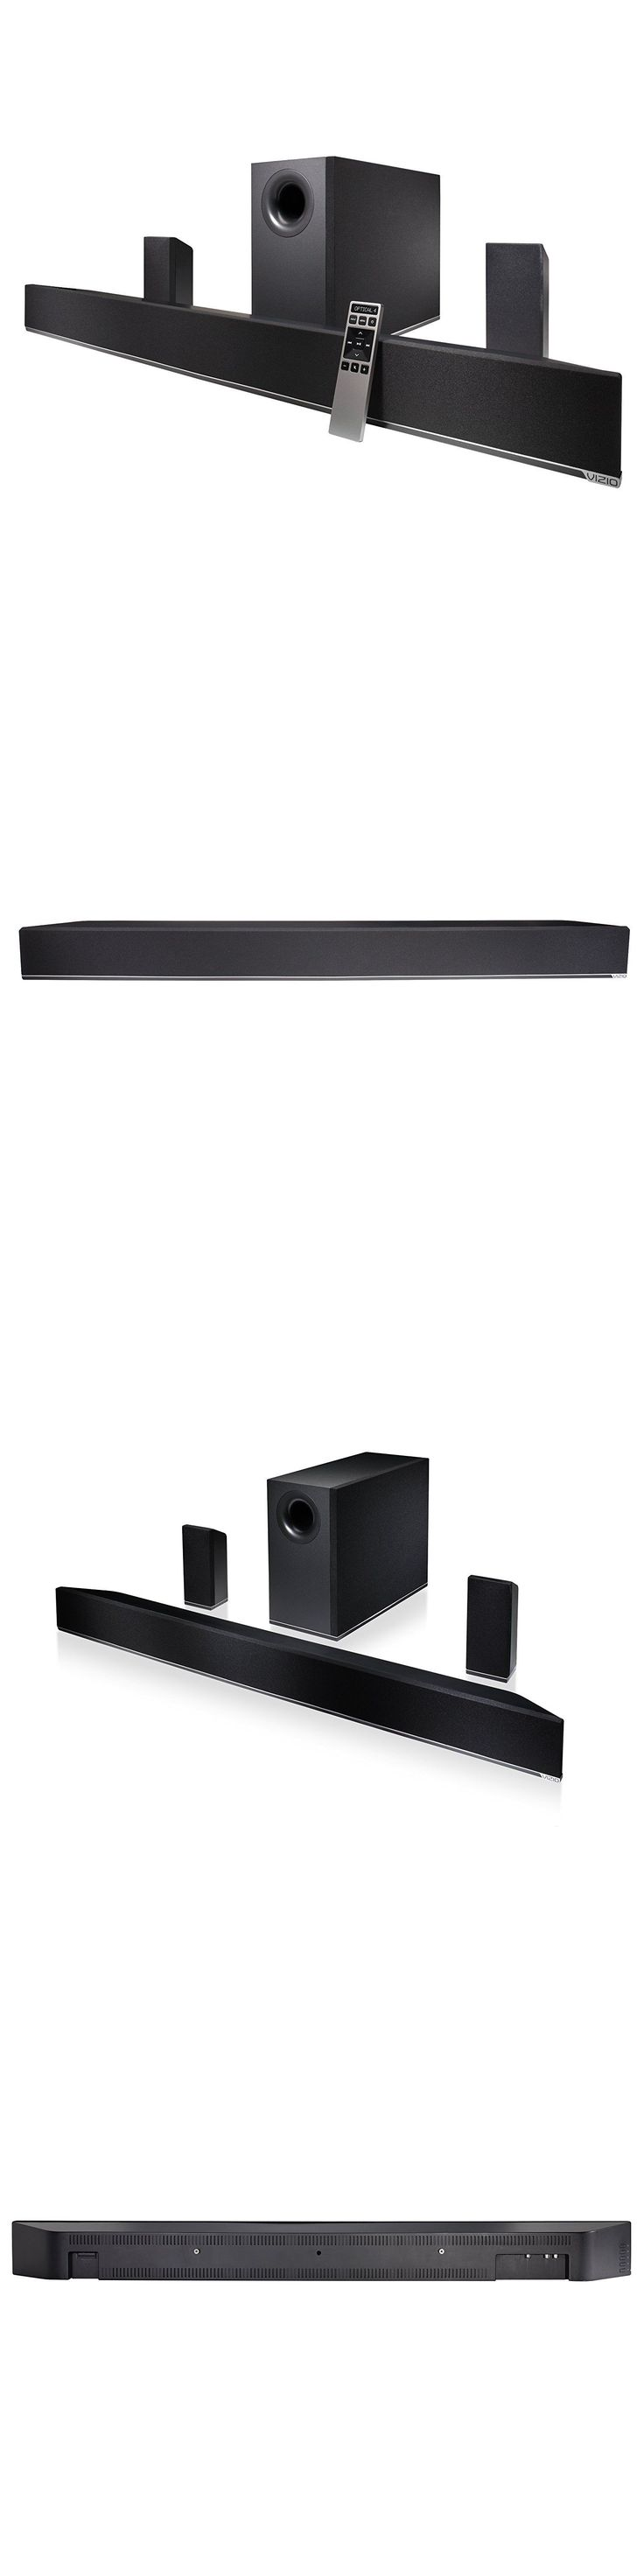 Home Theater Systems: New Vizio S4251w-B4 5.1 Soundbar With Wireless Subwoofer And Satellite Speakers -> BUY IT NOW ONLY: $236.55 on eBay!